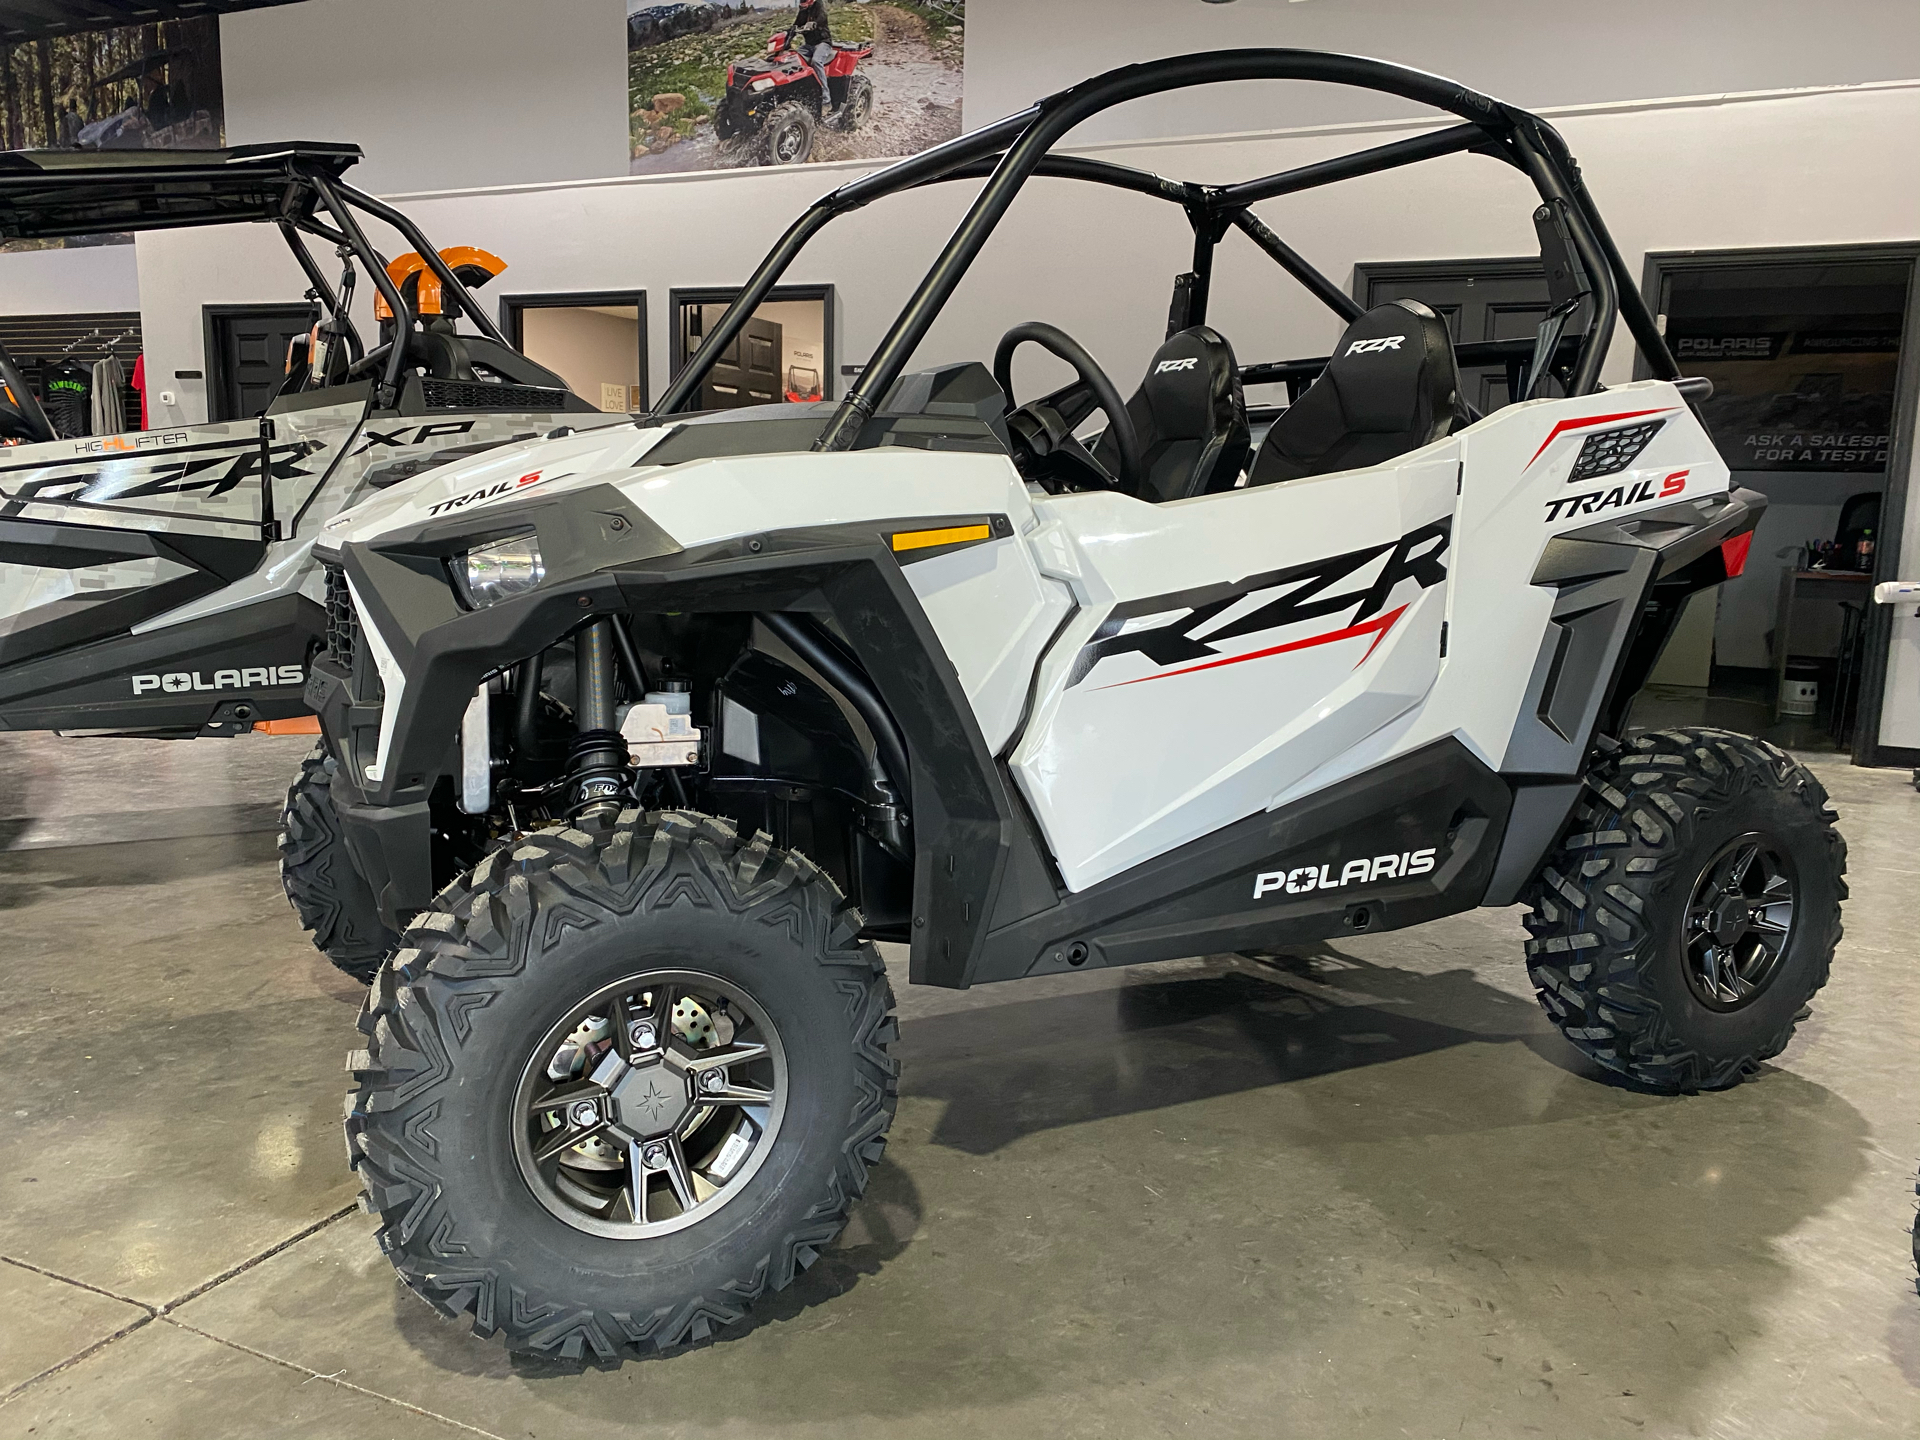 2021 Polaris RZR Trail S 900 Sport in Pikeville, Kentucky - Photo 3